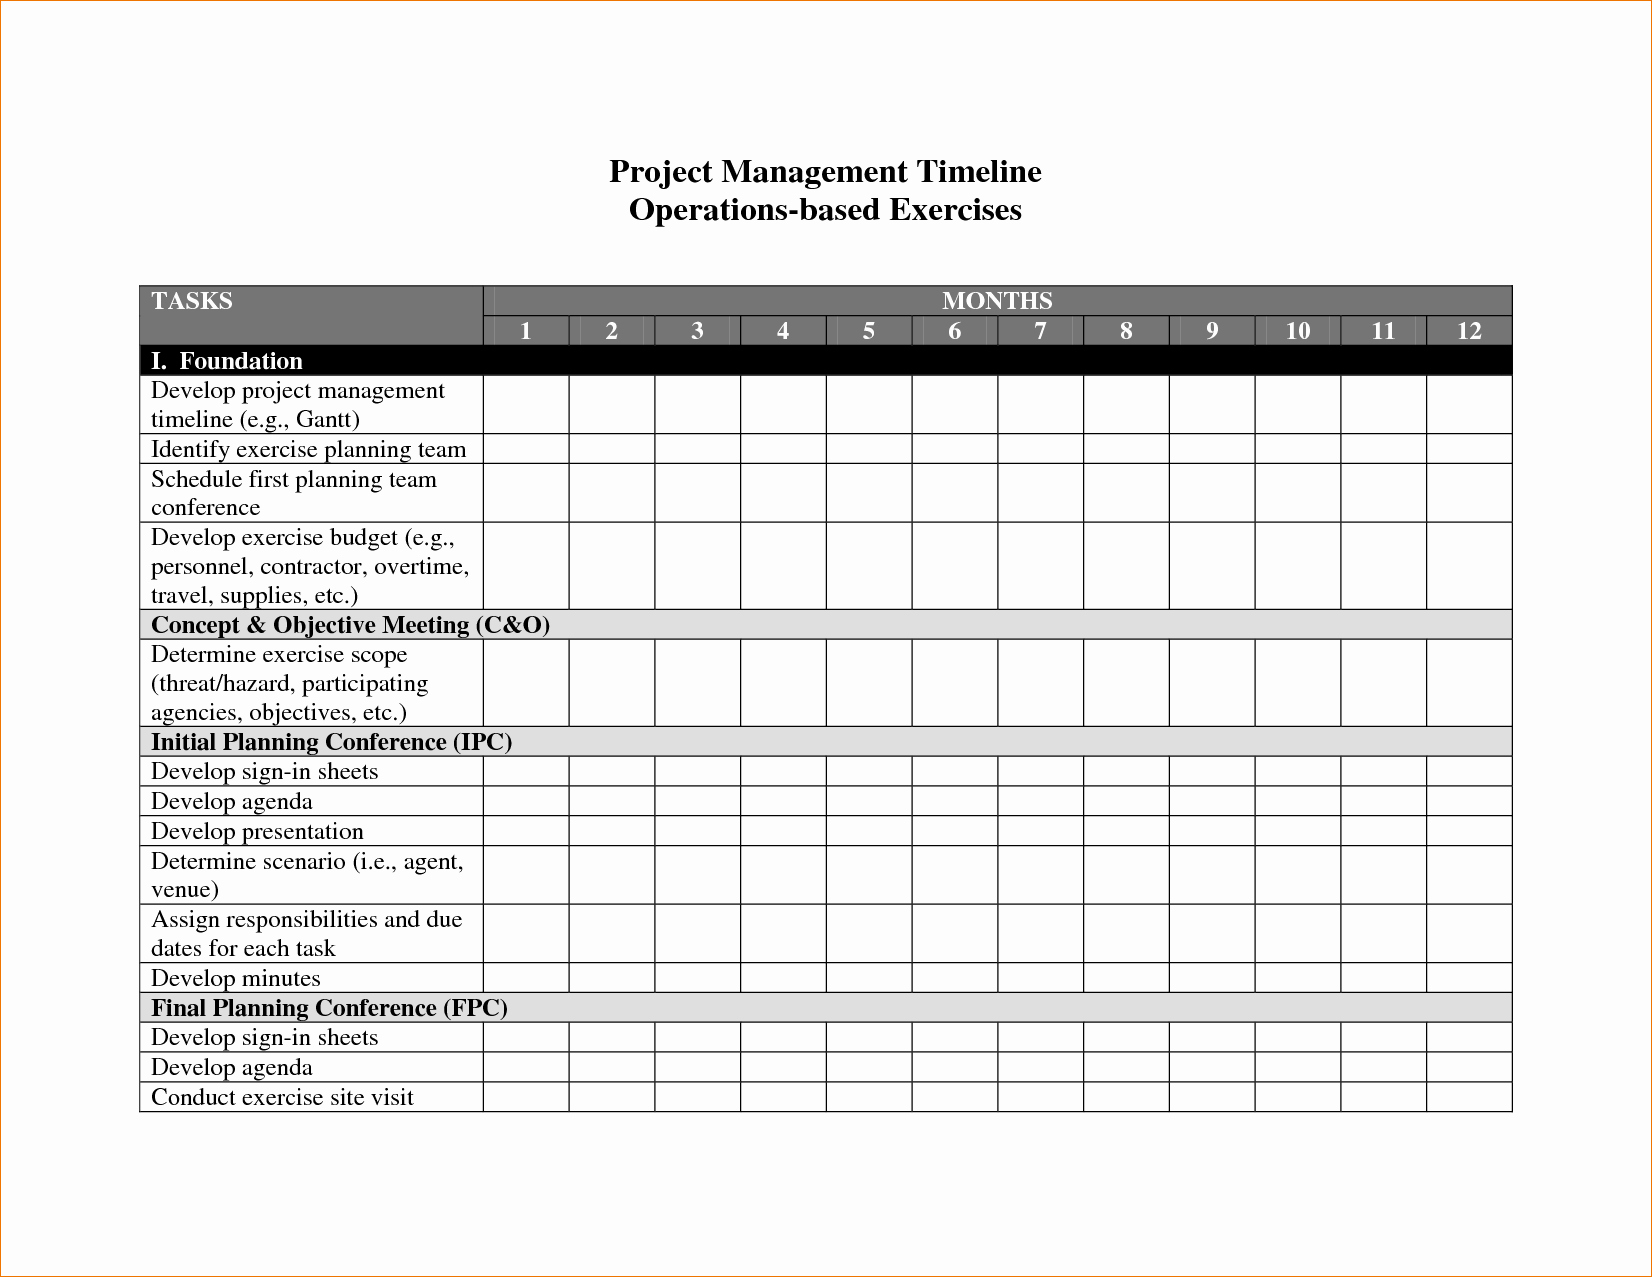 Free Project Management Timeline Template Elegant 8 Project Management Timeline Template